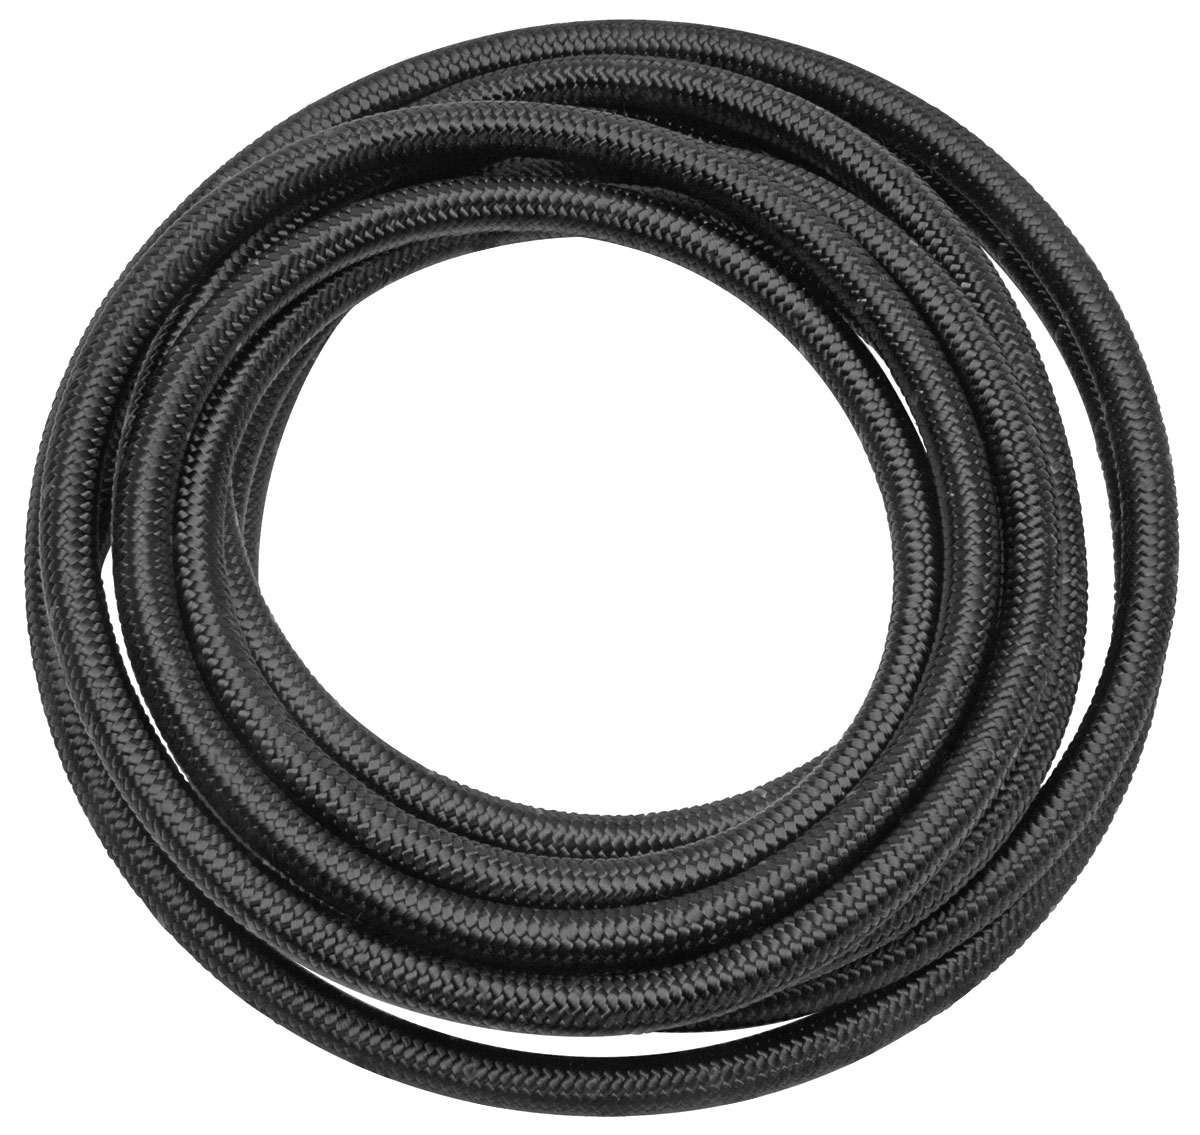 Hose, ProLite 350, Earls, -6AN, 3FT